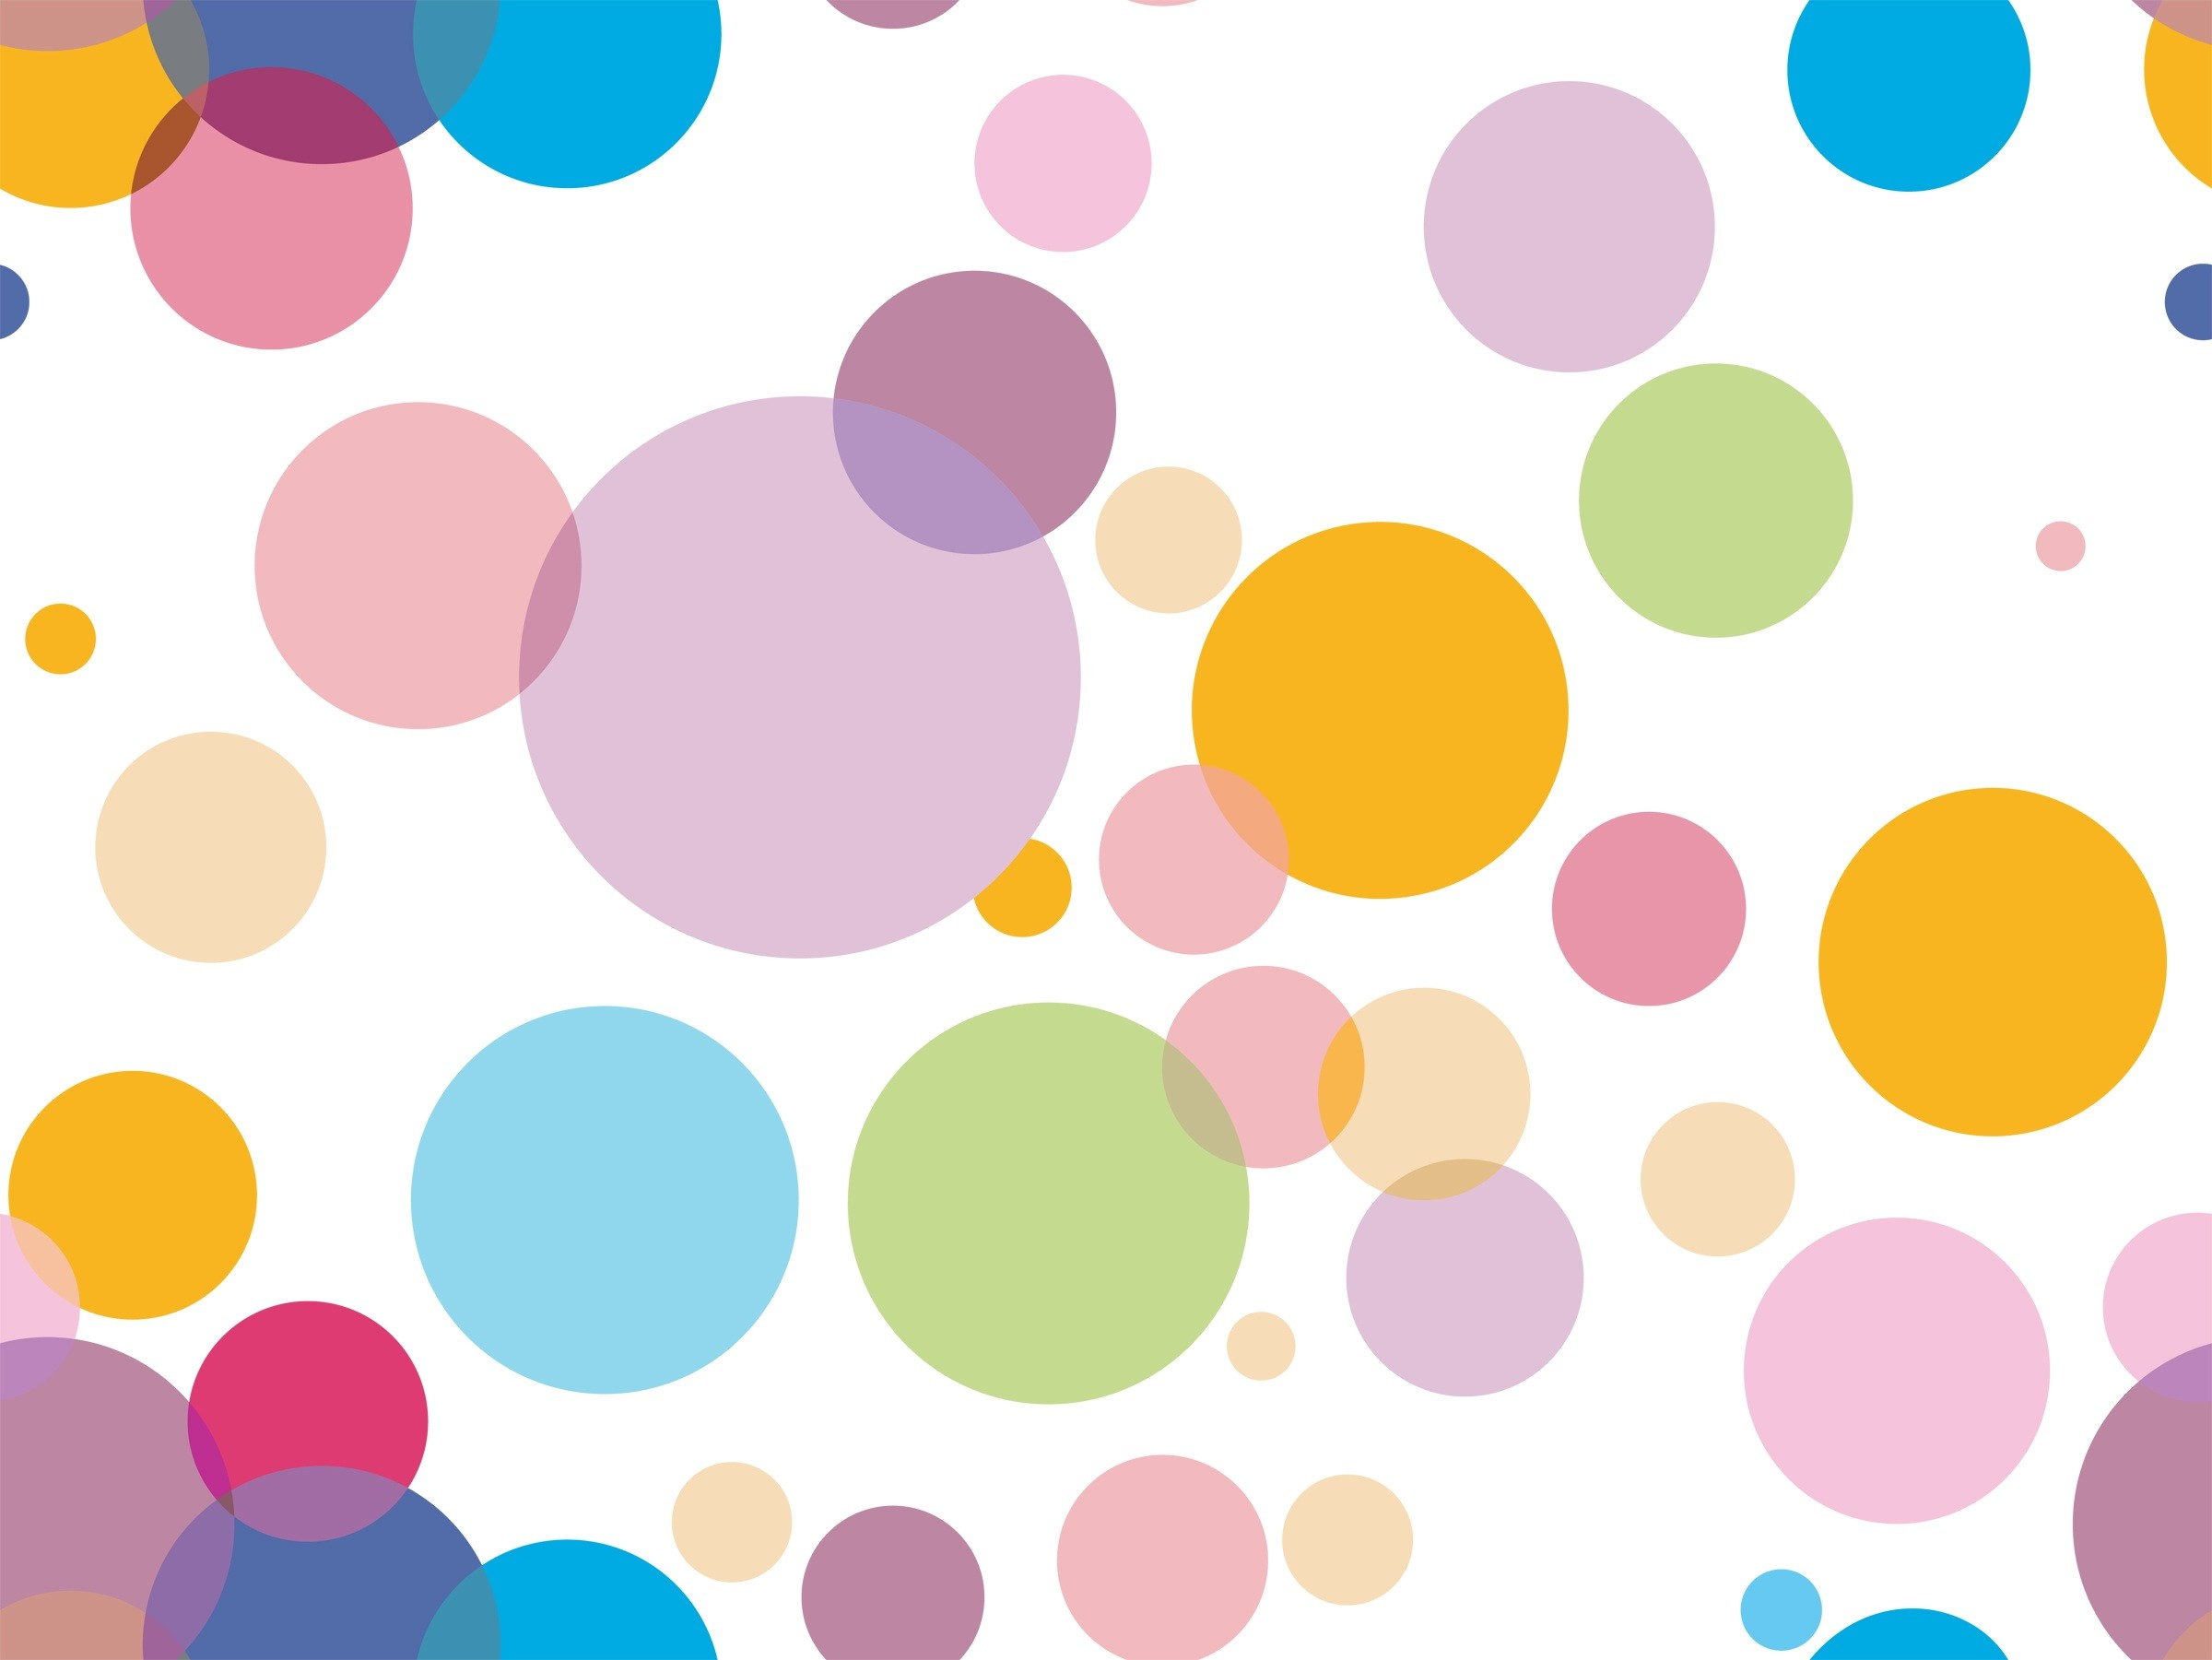 bright light colors and polka dots what is your favorite color this .